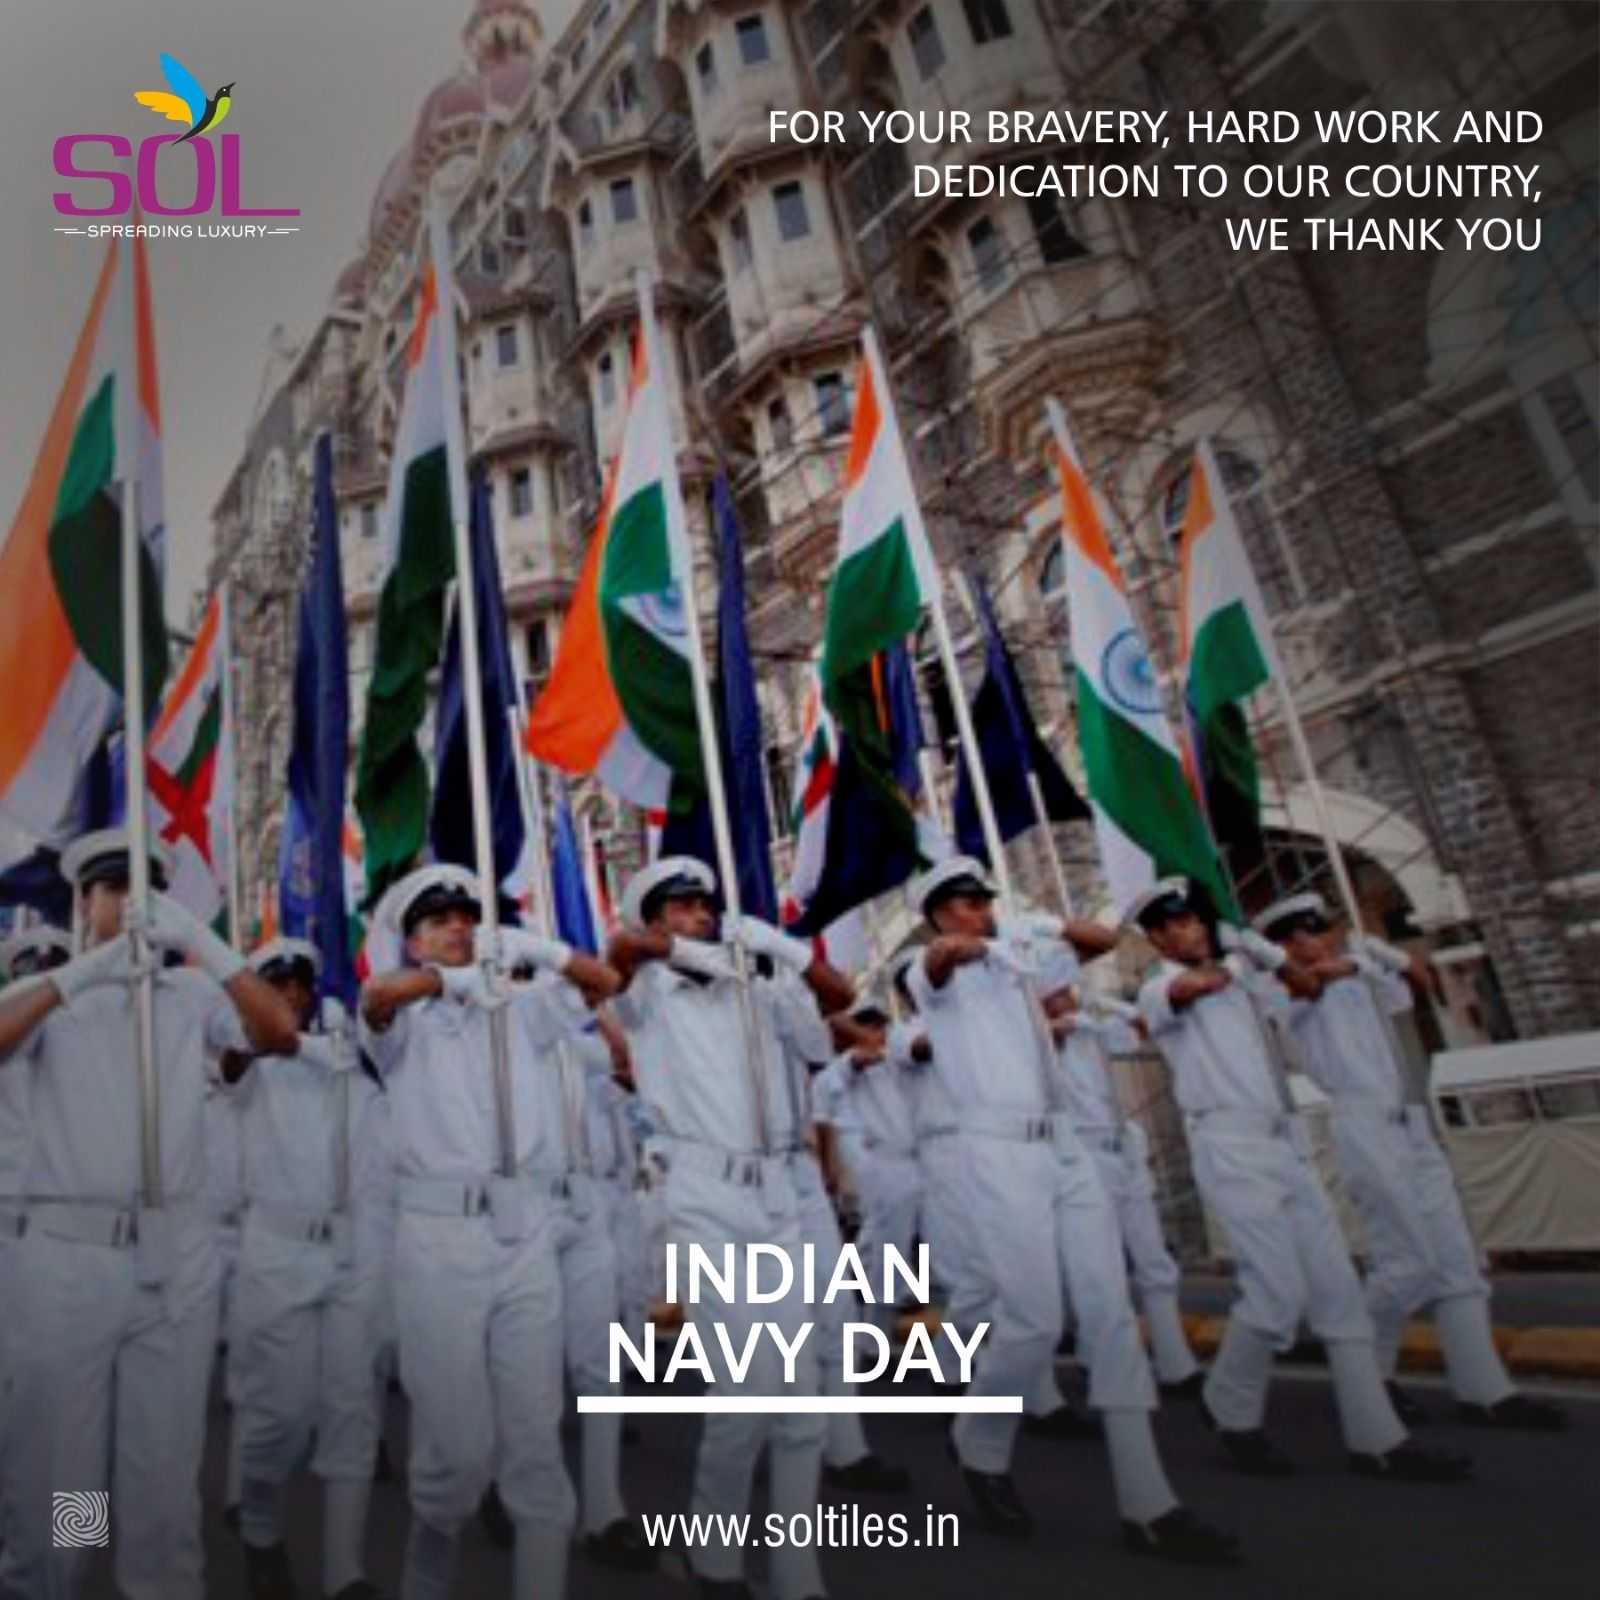 For Your Bravery Hard Work And Dedication To Our Country We Thank You Happy Indian Navy Day Indiannavyday Indiann Indian Navy Day Navy Day Military Quotes